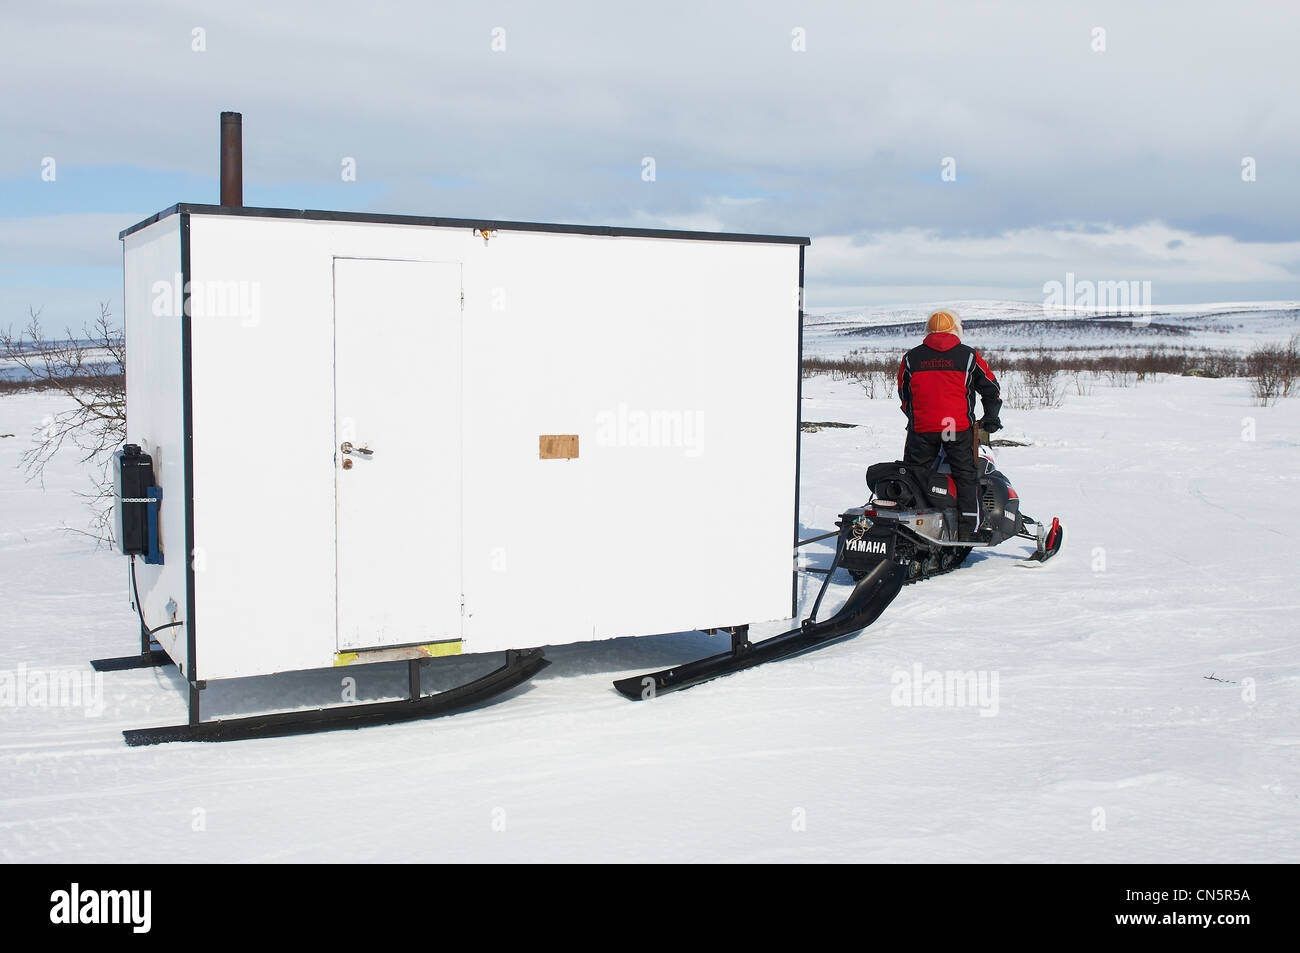 Norway, Lapland, Finnmark County, Karasjok, the great annual reinder migration breeders in reinder watching - Stock Image